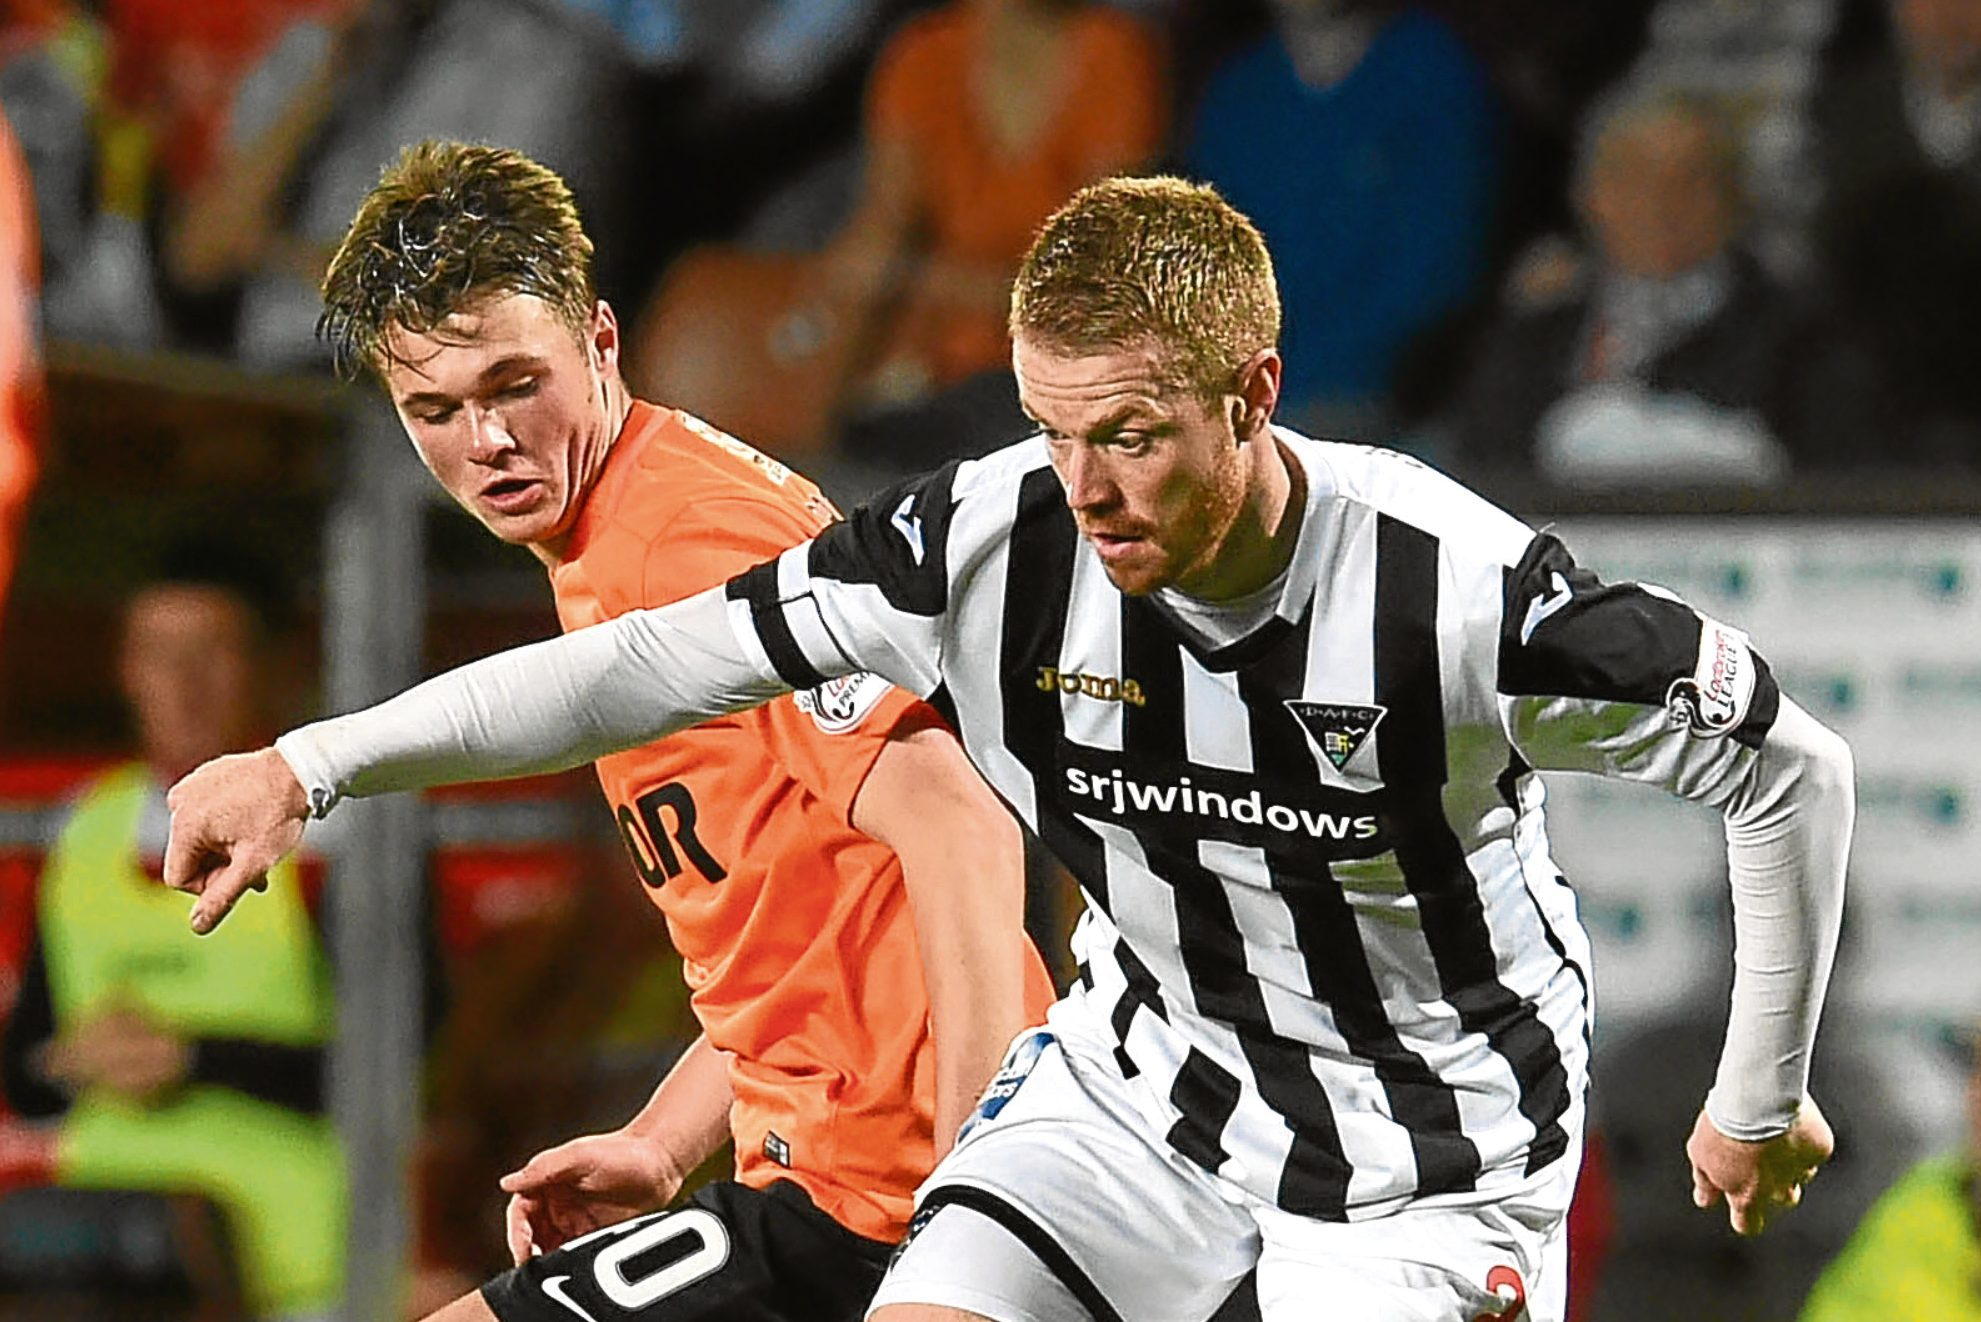 Full-back Jamie Robson made his debut appearance for Dundee United last season during their 3-1 League Cup win against Dunfermline.